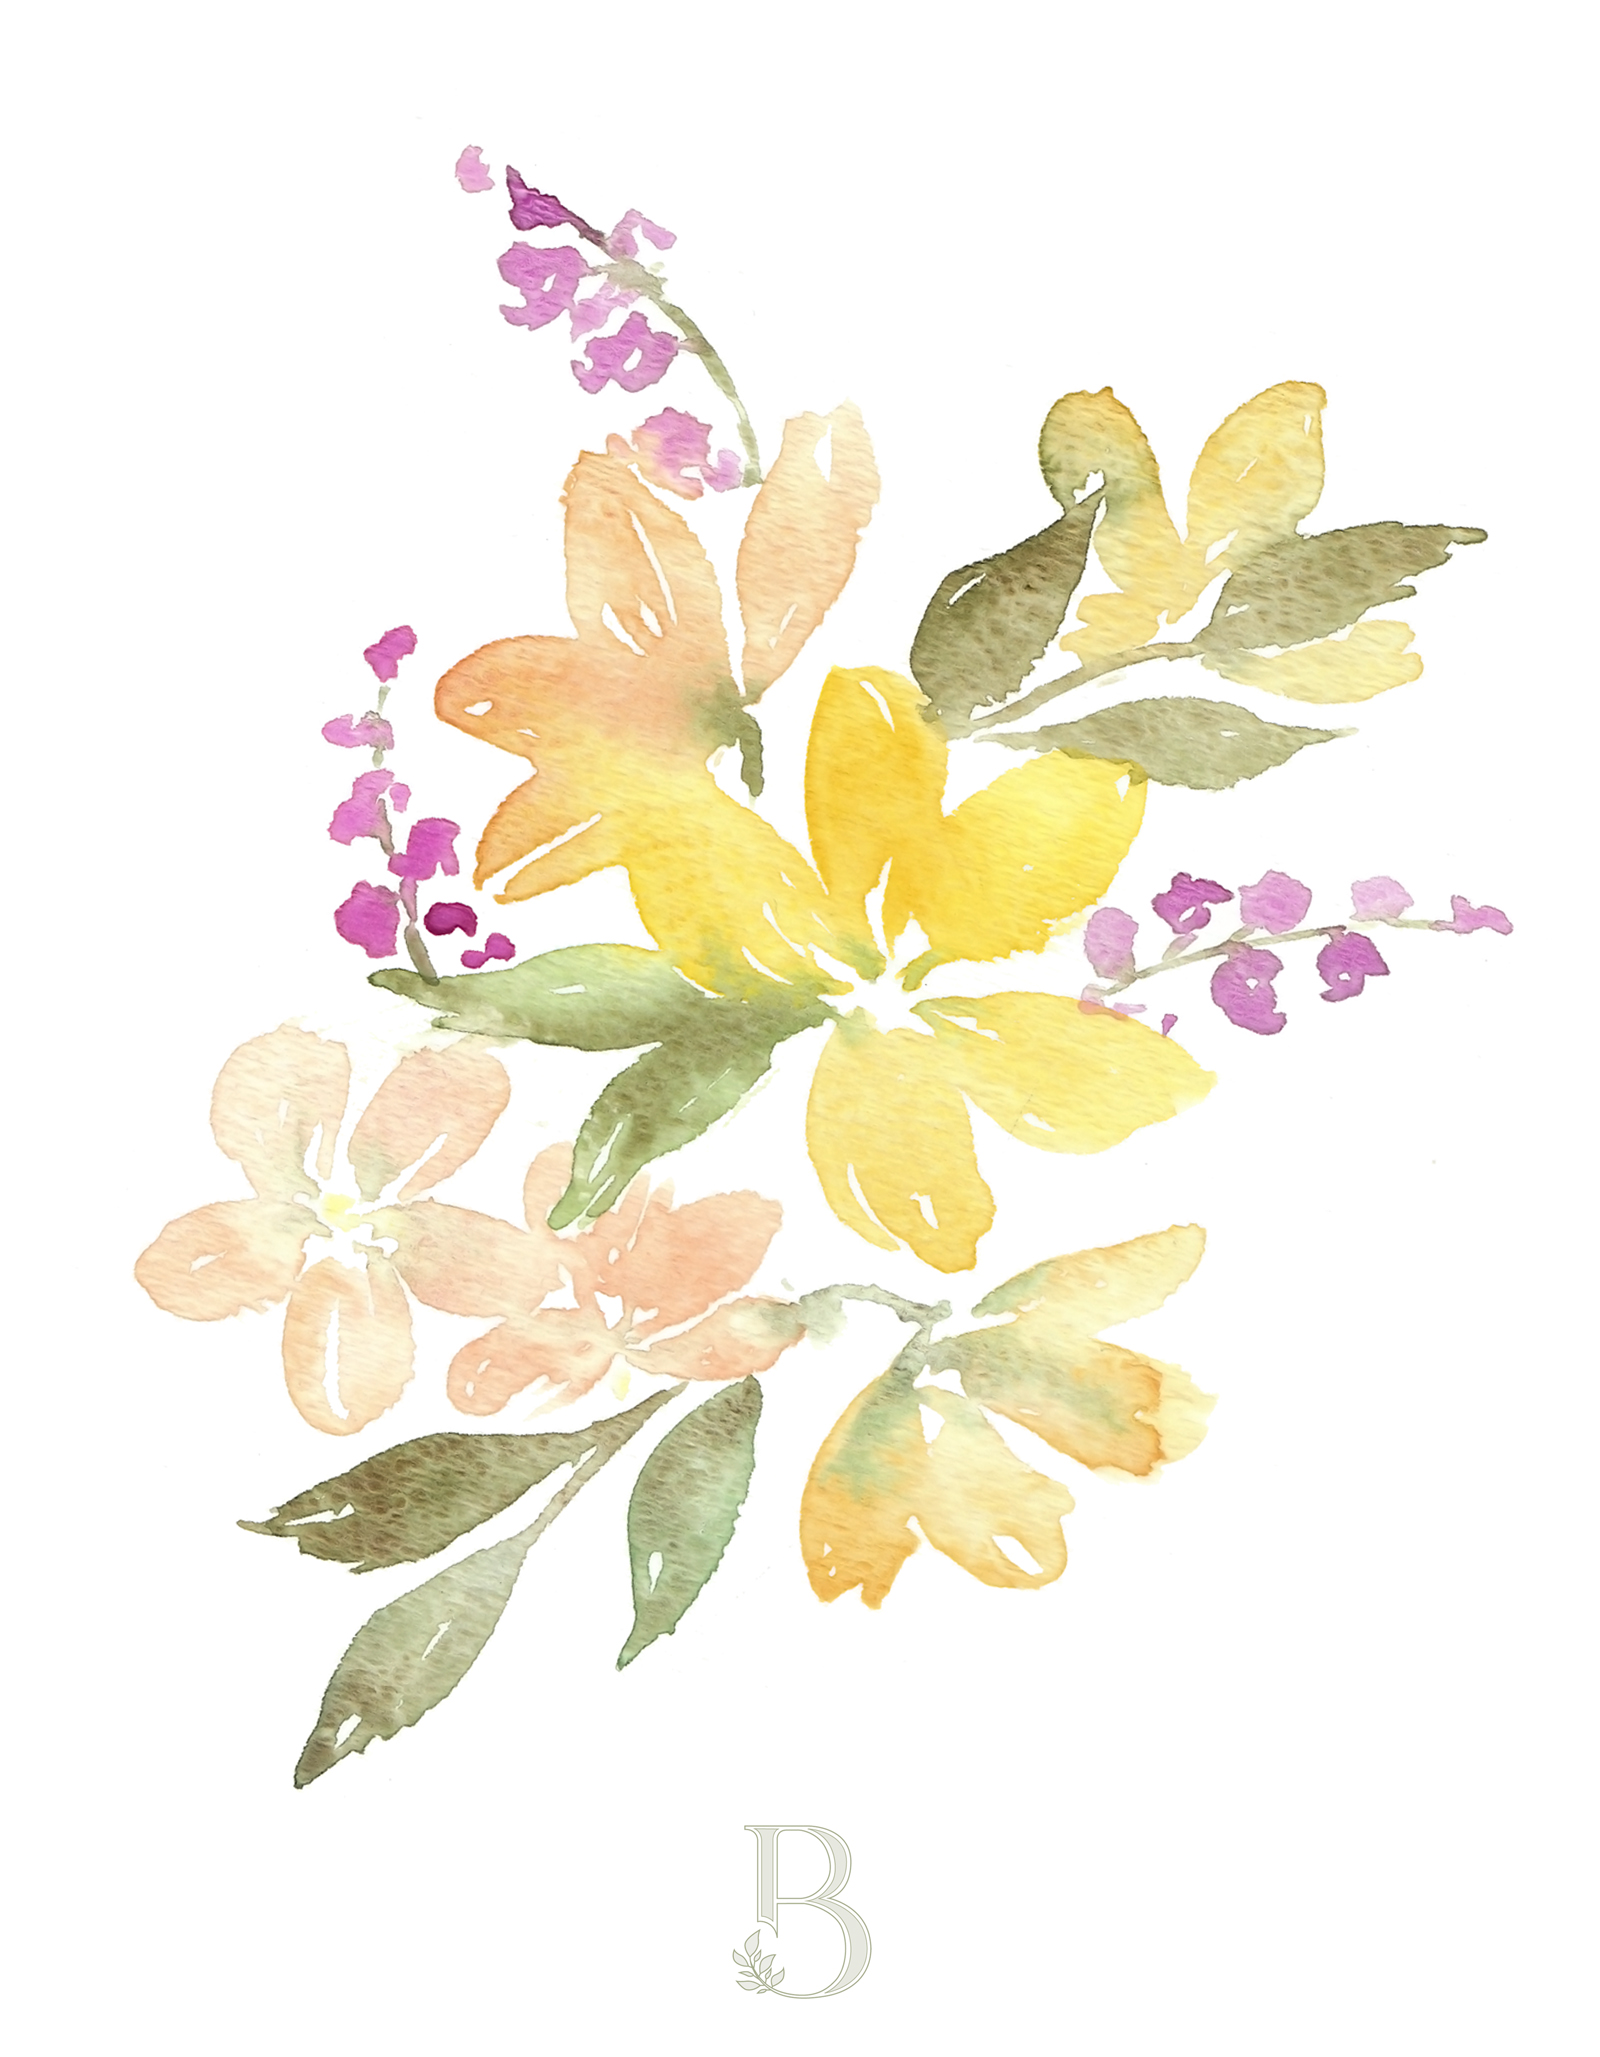 Loose watercolor flowers by Blushed Design.  It's not summer for me until there's a big bouquet of flowers on the table!  So I had to paint a few of them here for you :) #watercolorflowers #watercolor #loosewatercolors